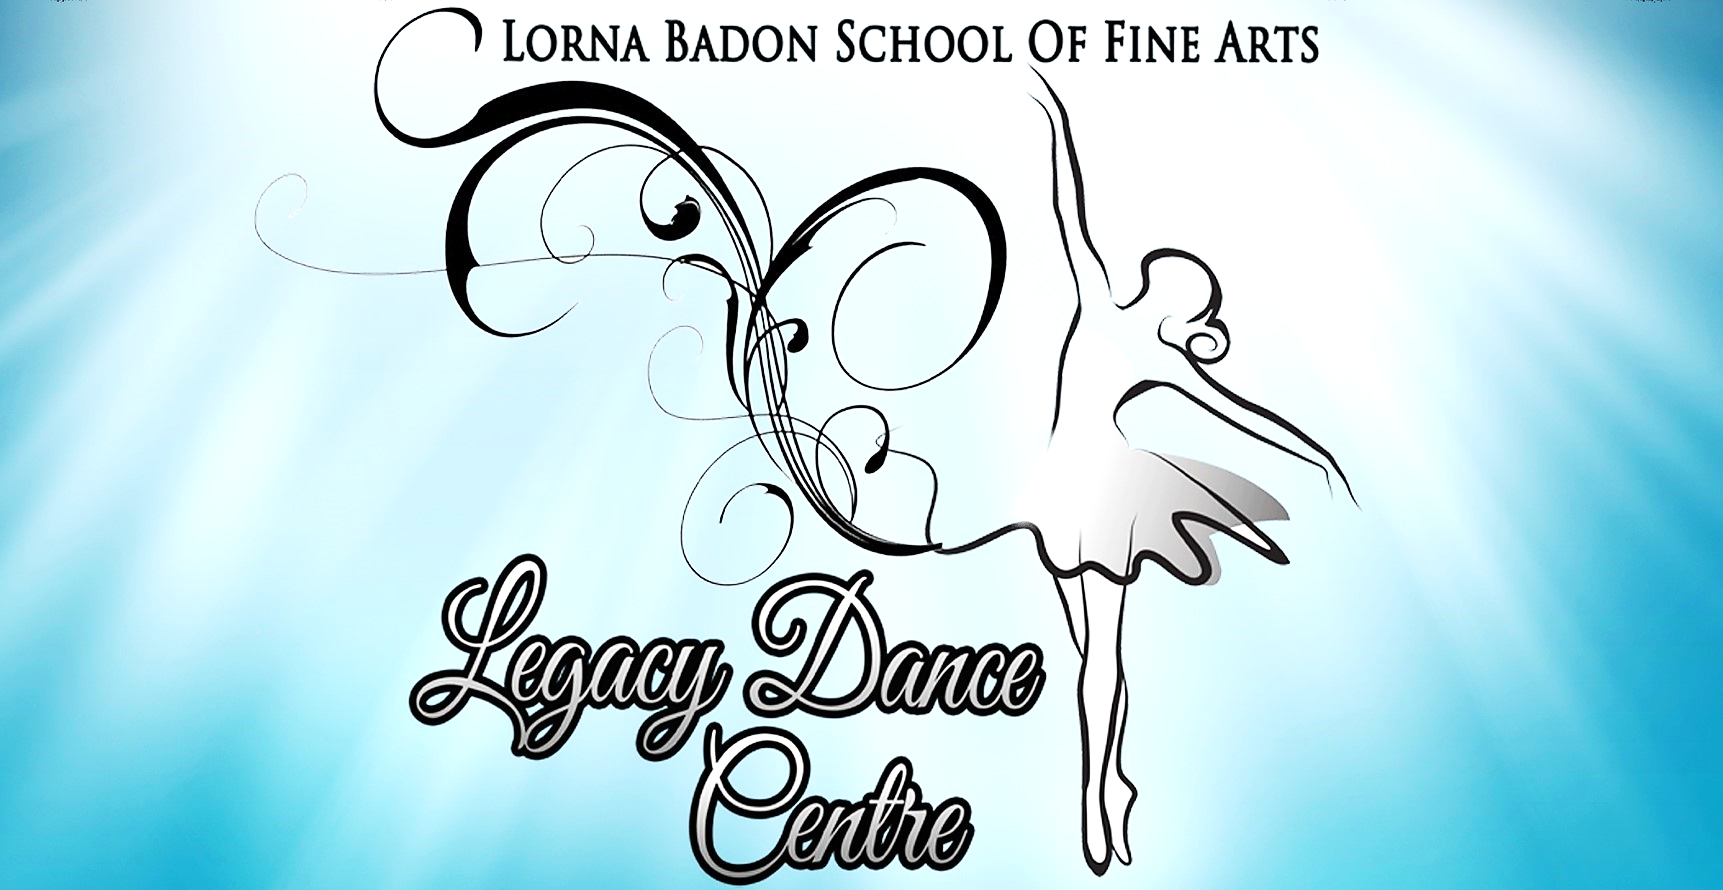 Lorna Badon School of Fine Arts